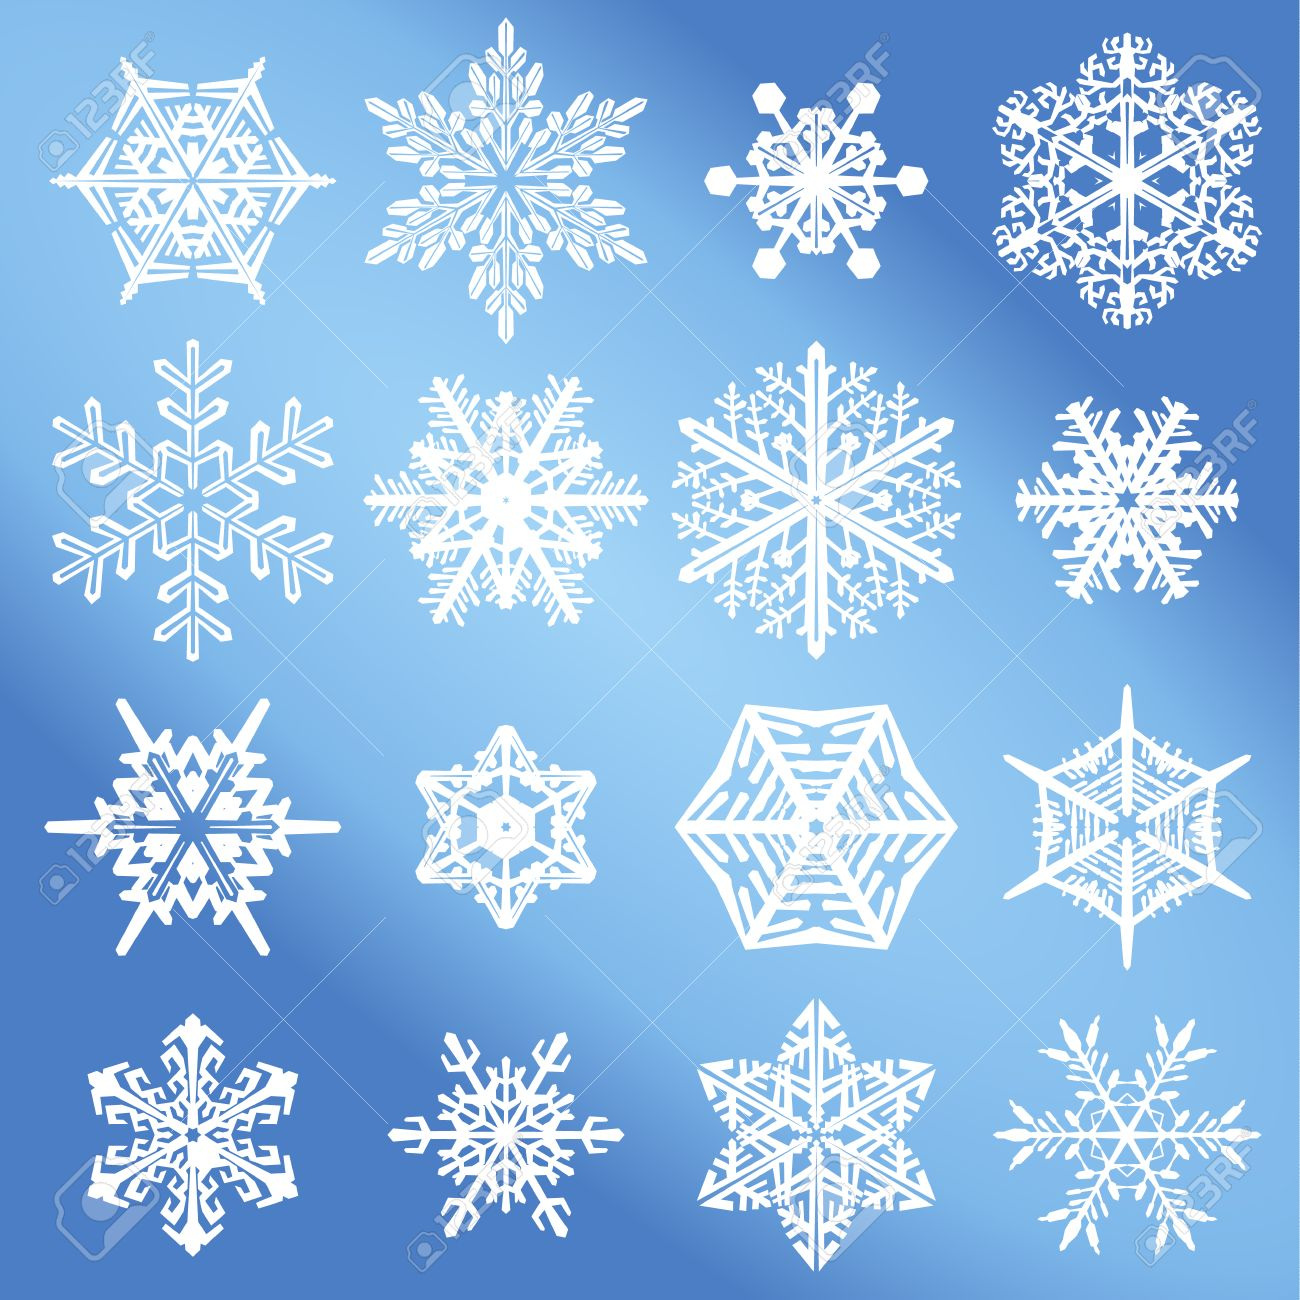 vector snowflake set an illustration collection of different